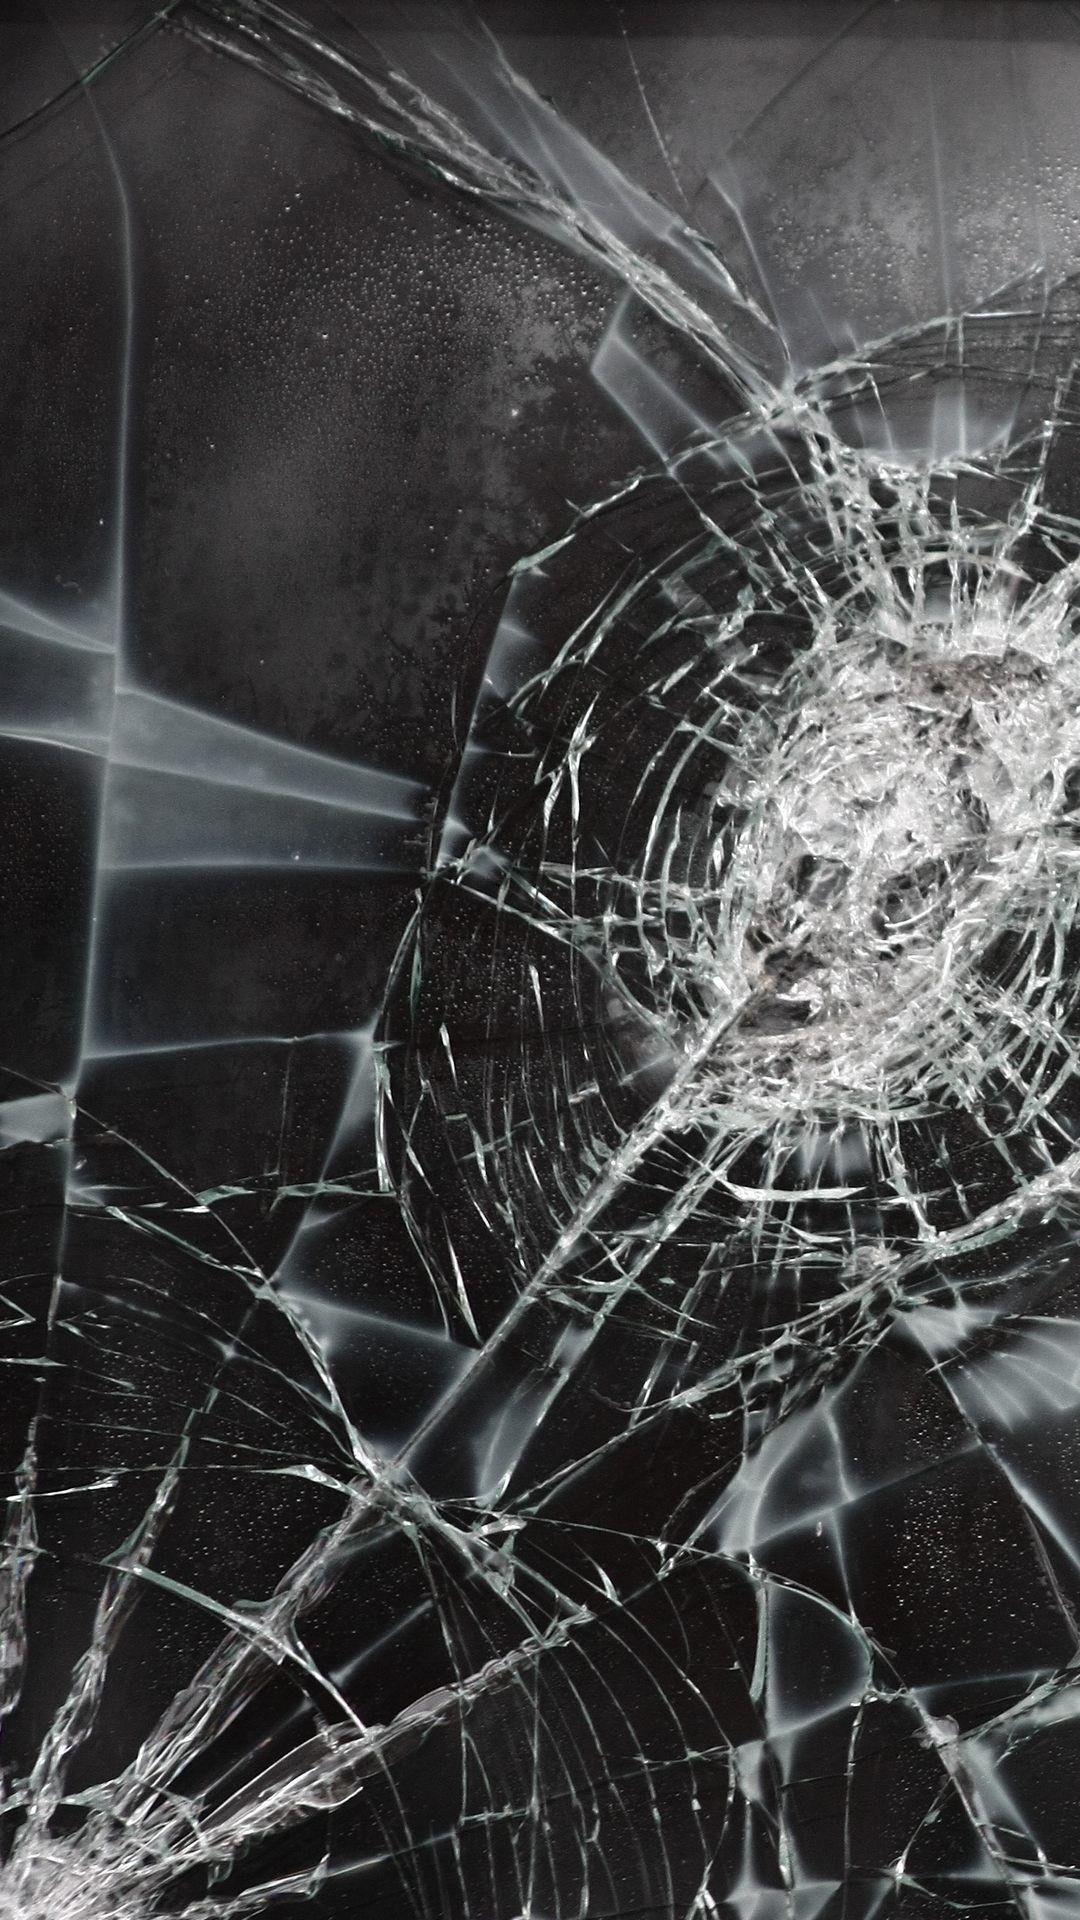 Realistic Cracked Screen Wallpaper Ios Broken Screen Wallpaper Screen Wallpaper Hd Screen Wallpaper